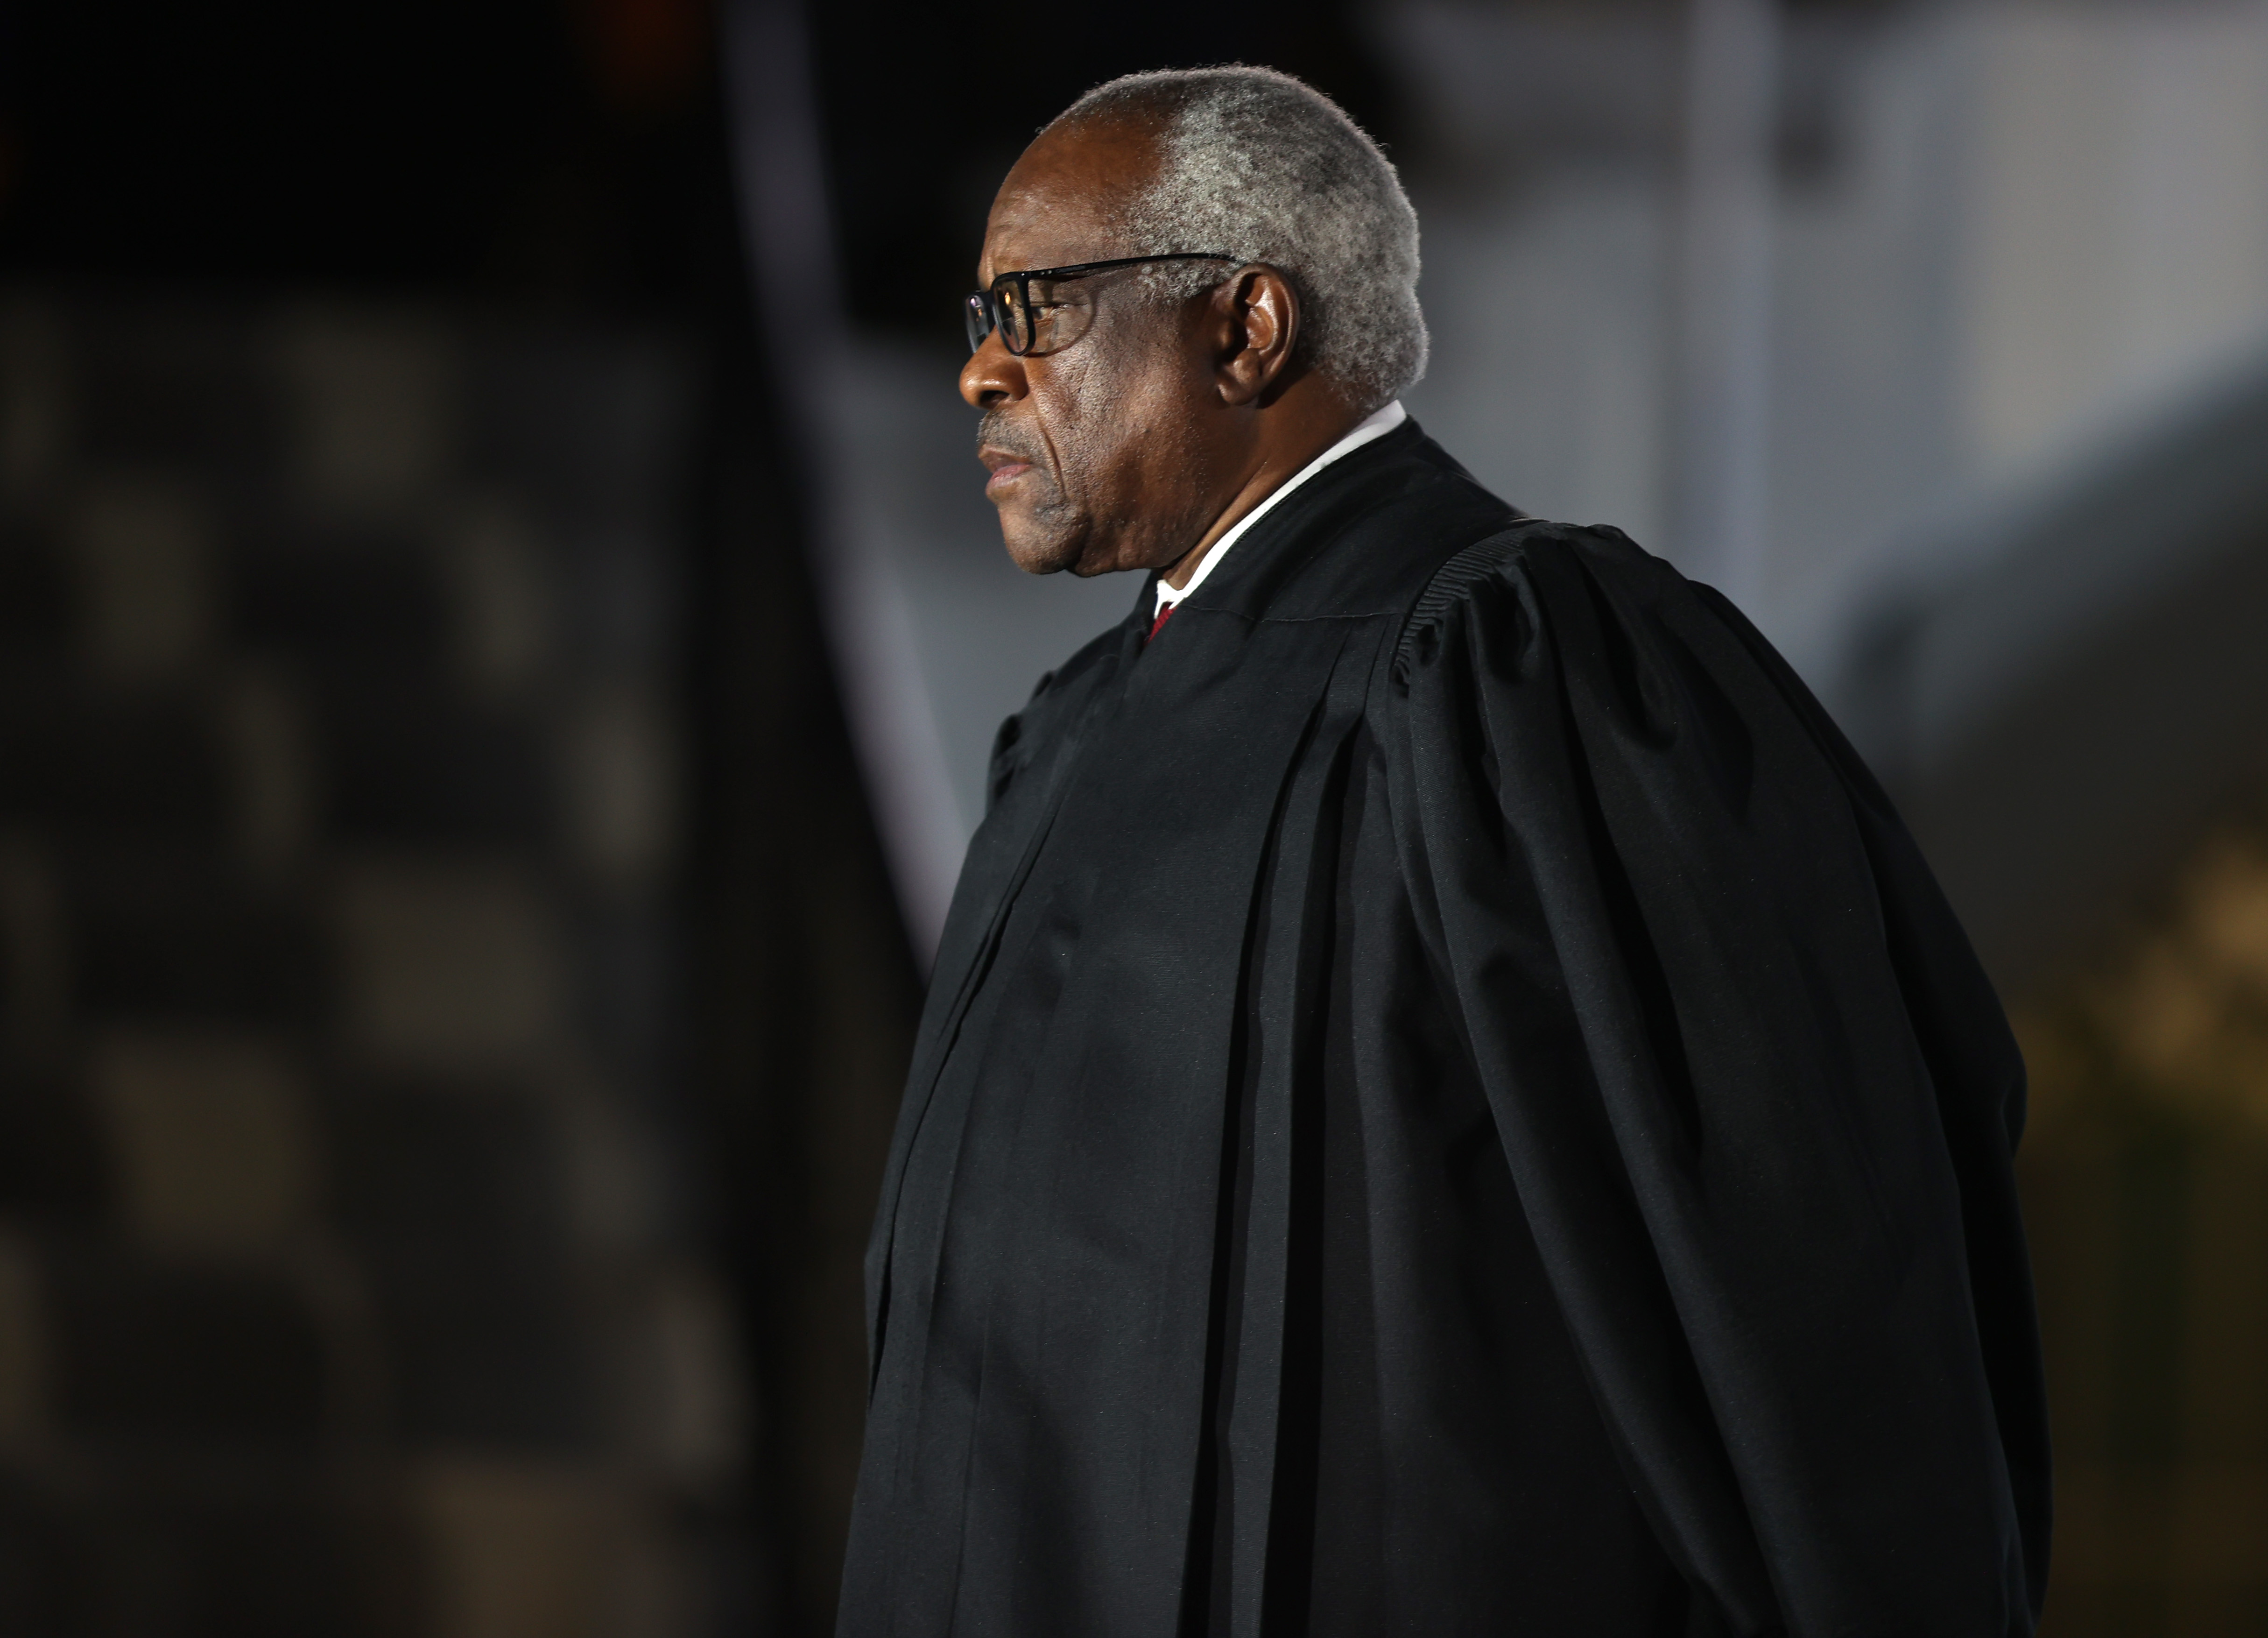 Supreme Court Associate Justice Clarence Thomas attends the ceremonial swearing-in ceremony for Amy Coney Barrett to be the U.S. Supreme Court Associate Justice on the South Lawn of the White House October 26, 2020 in Washington, DC. The Senate confirmed Barrett's nomination to the Supreme Court today by a vote of 52-48. (Photo by Tasos Katopodis/Getty Images)